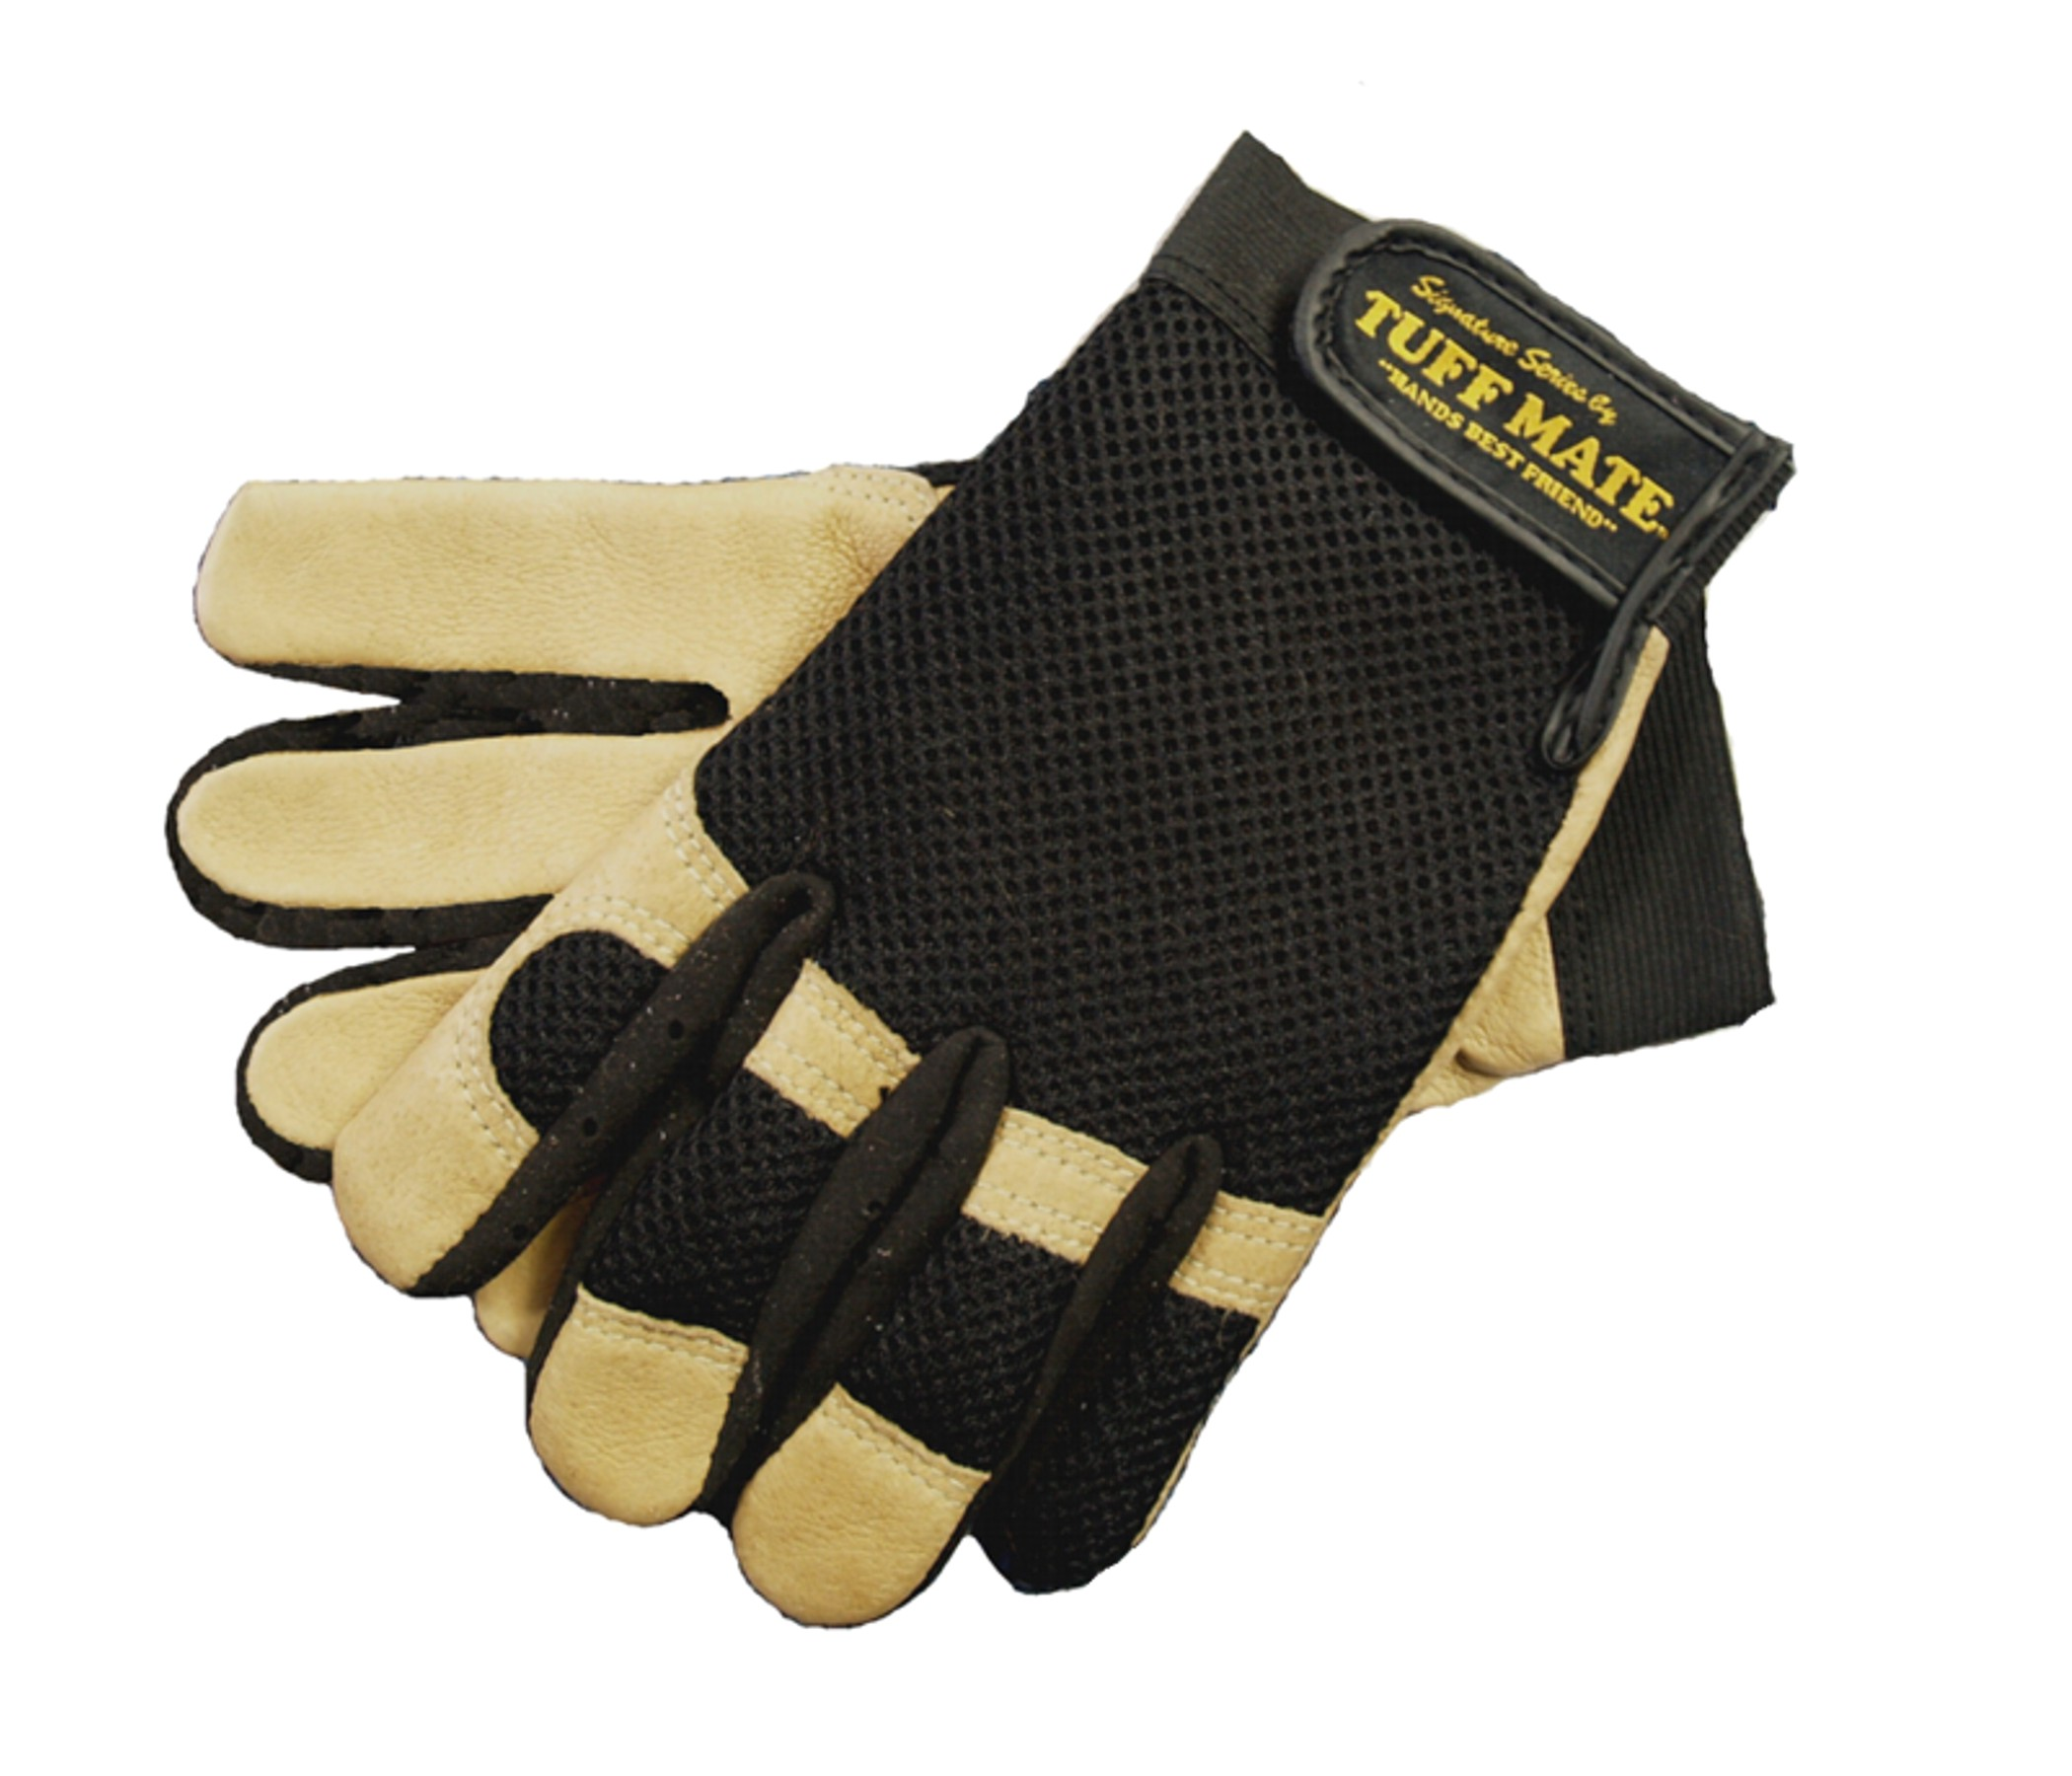 Mens fleece gloves xxl - 3115